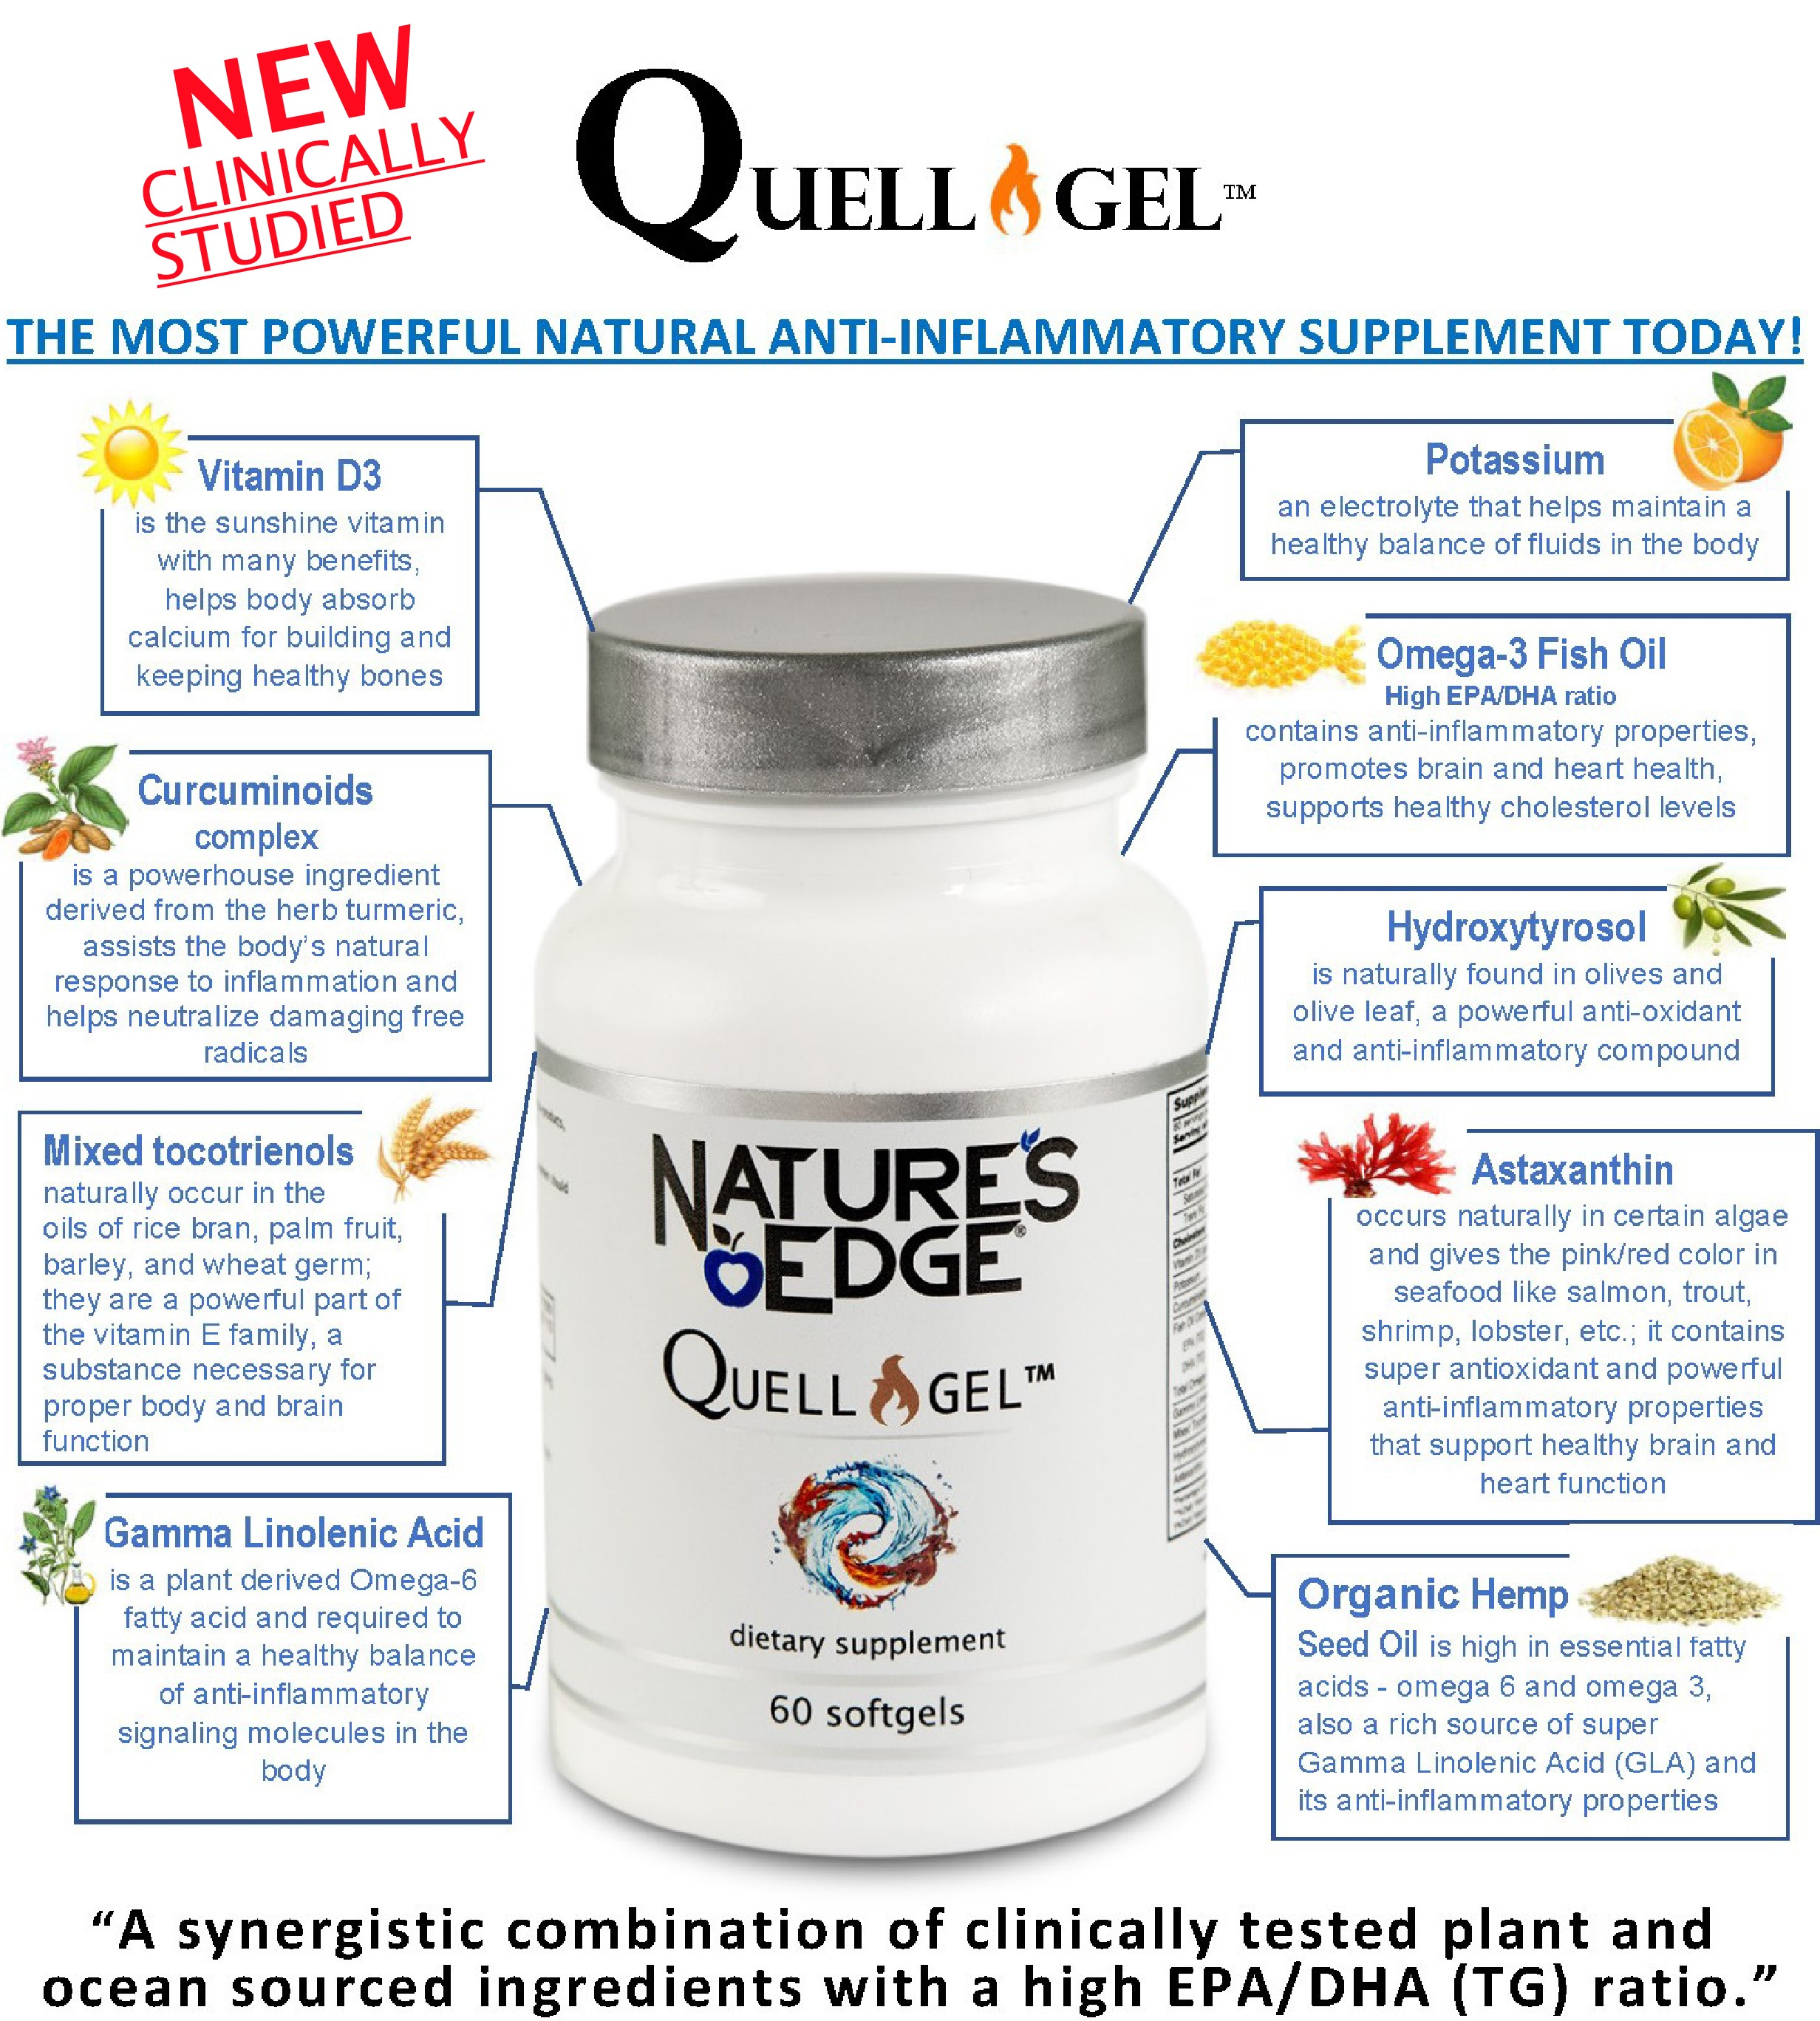 Quell Gel NEW.jpg